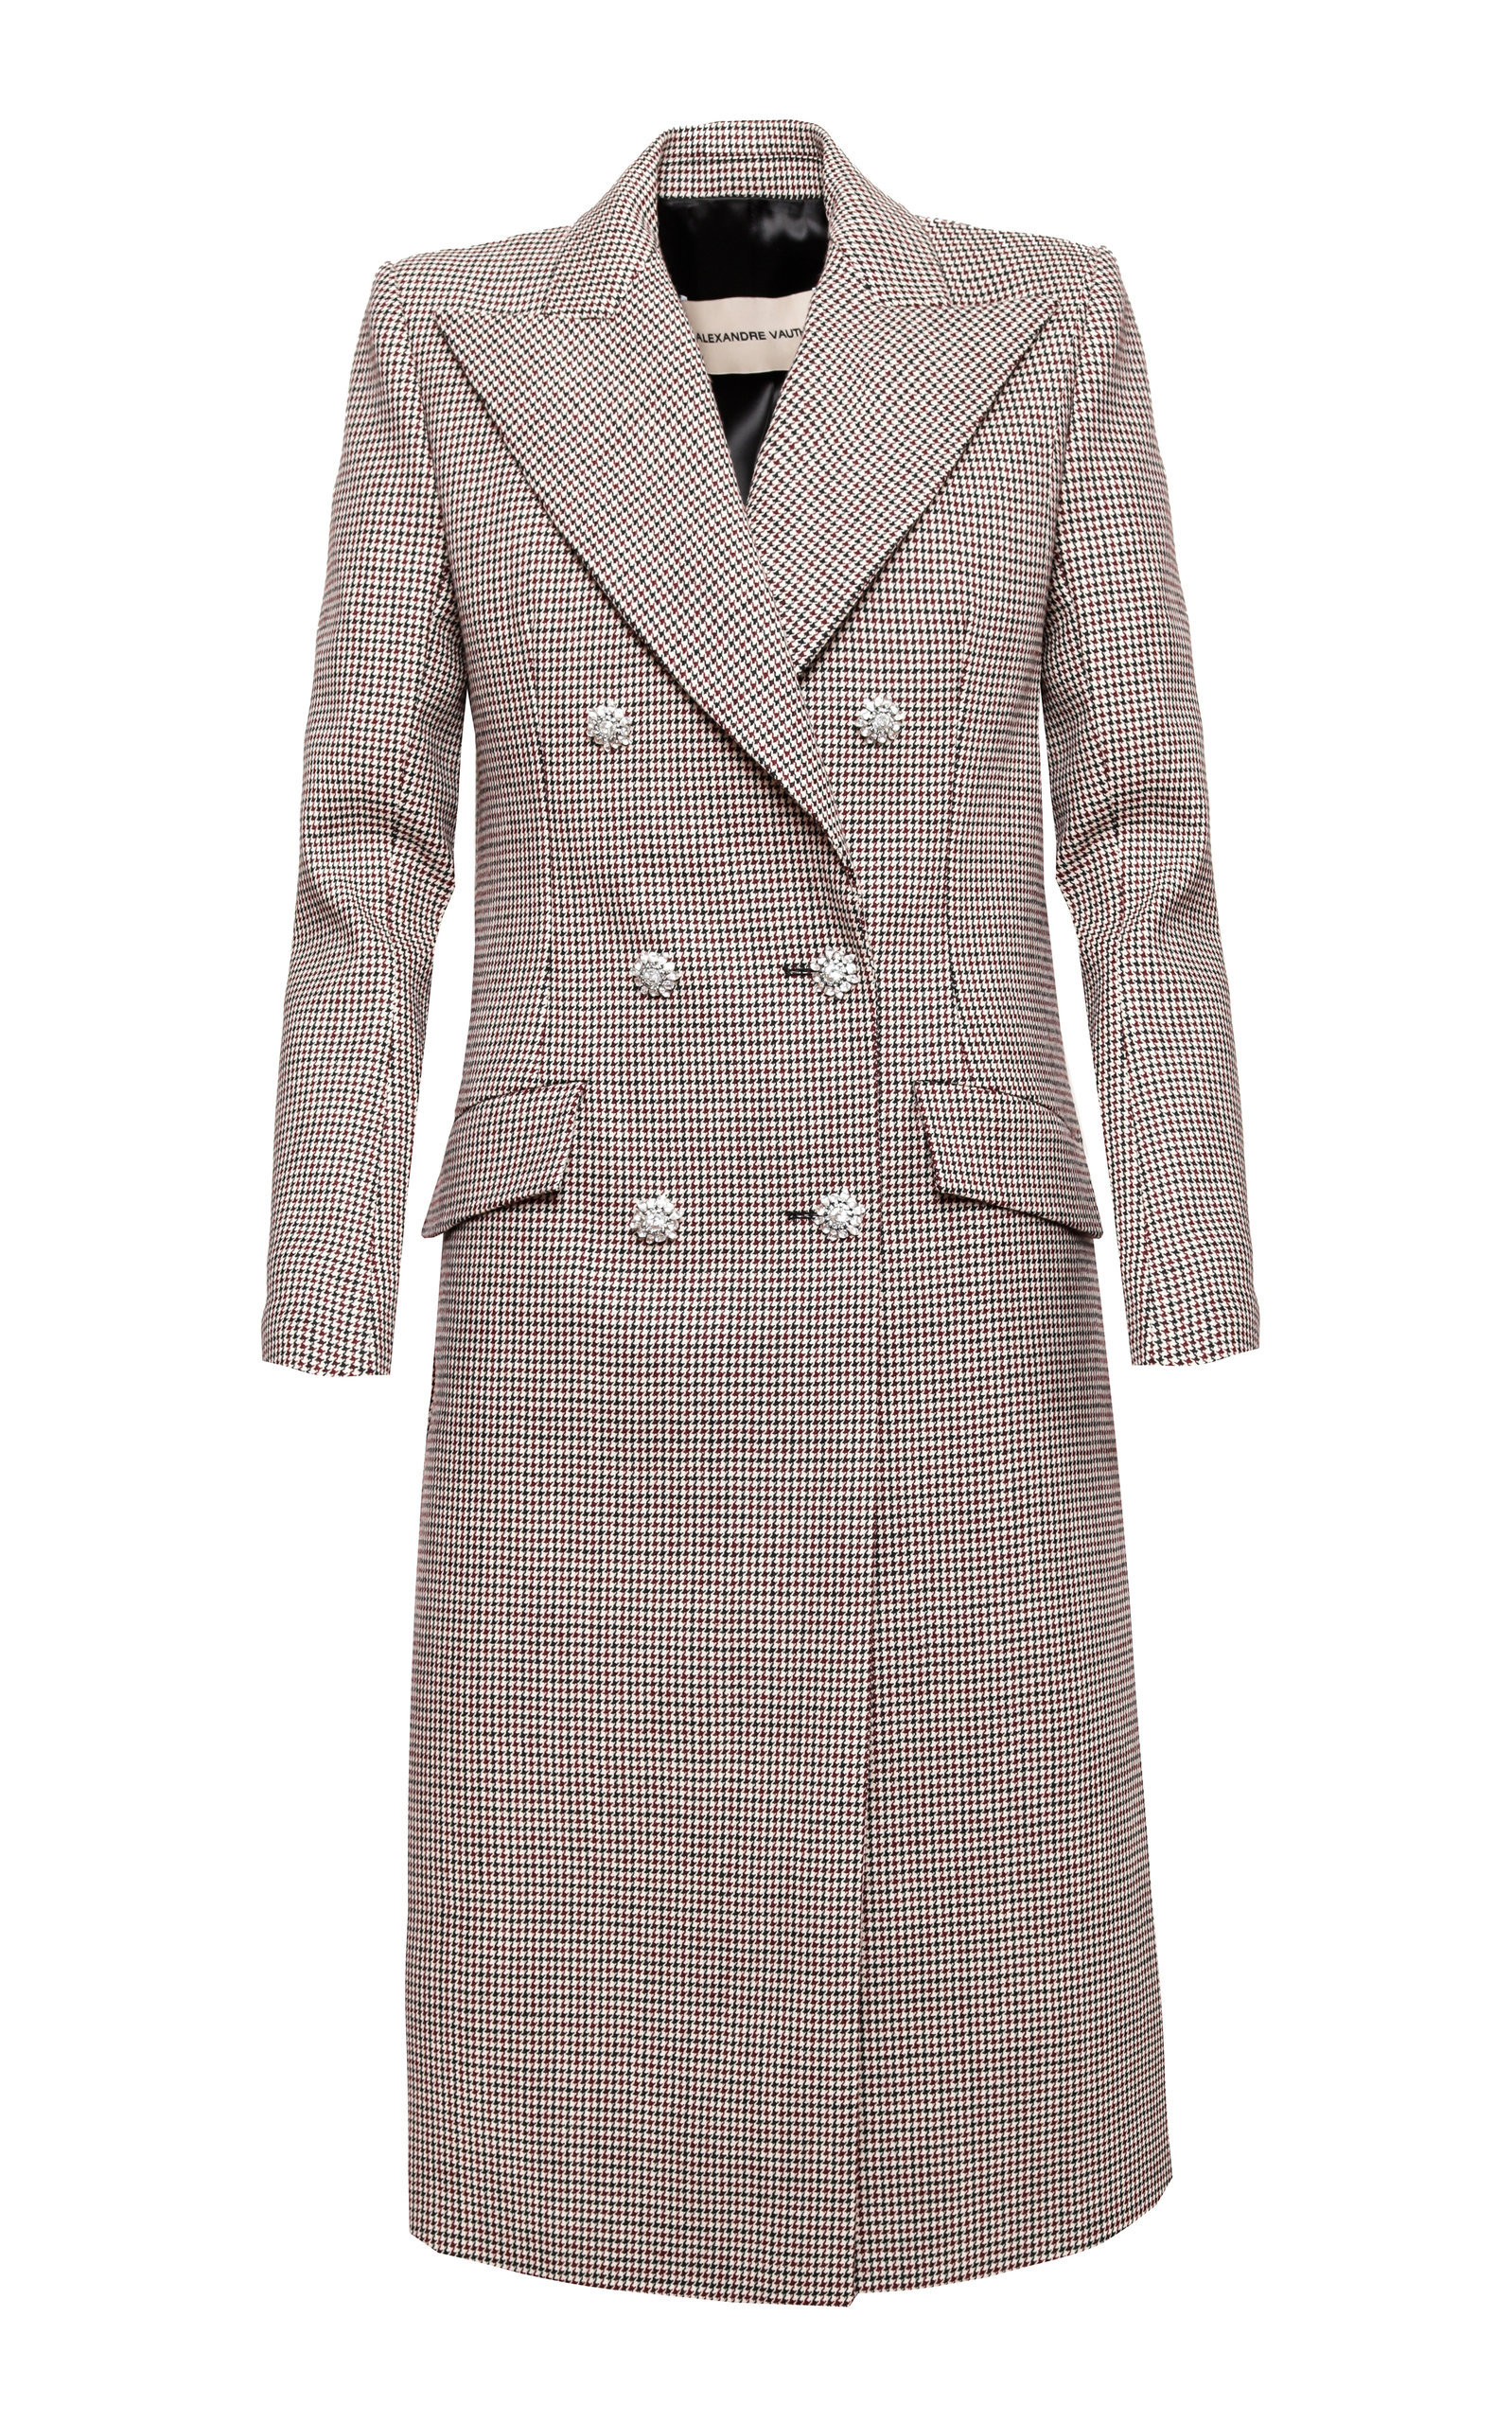 Alexandre Vauthier Coats Double Breasted Plaid Wool Coat